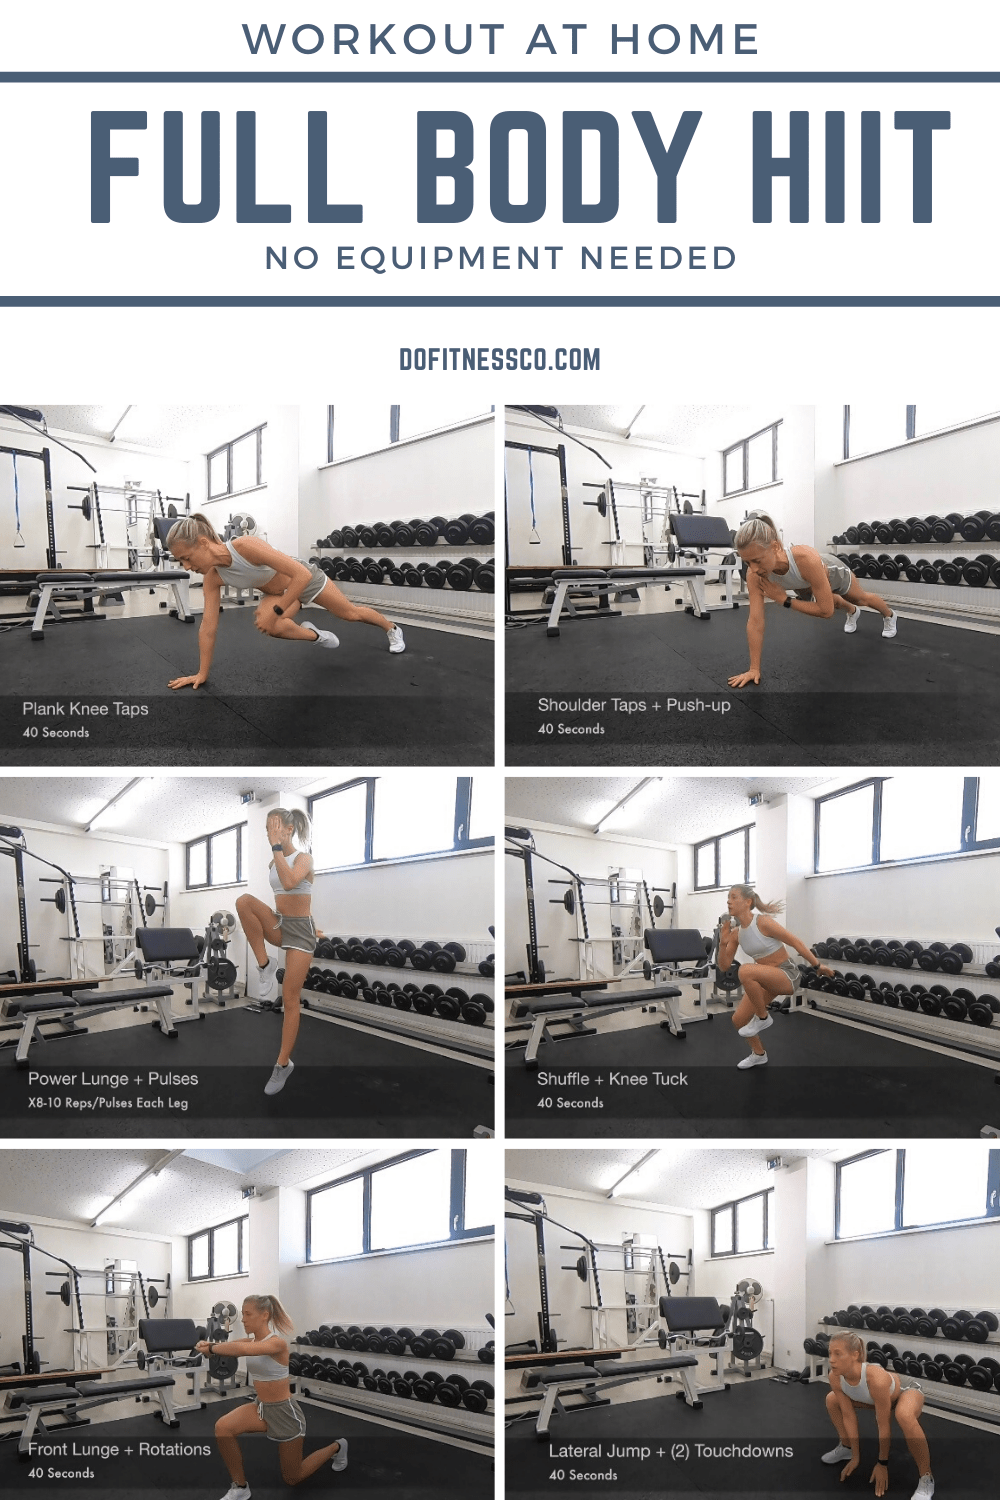 Workout At Home, Full Body HIIT Banner